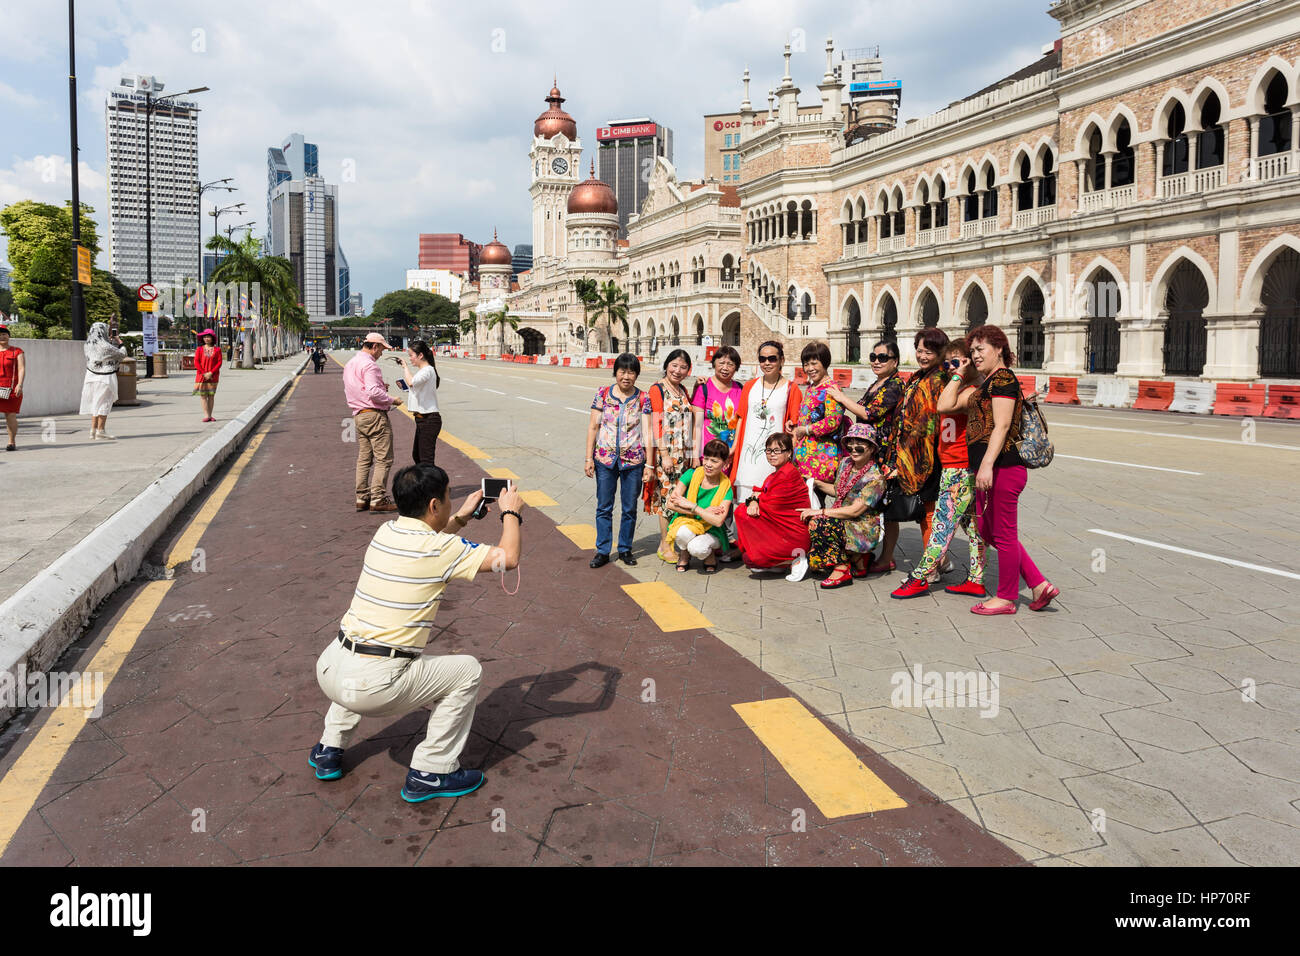 KUALA LUMPUR, MALAYSIA - JANUARY 14, 2017: A group of Chinese tourists poses for a photo in front of the Sultan - Stock Image